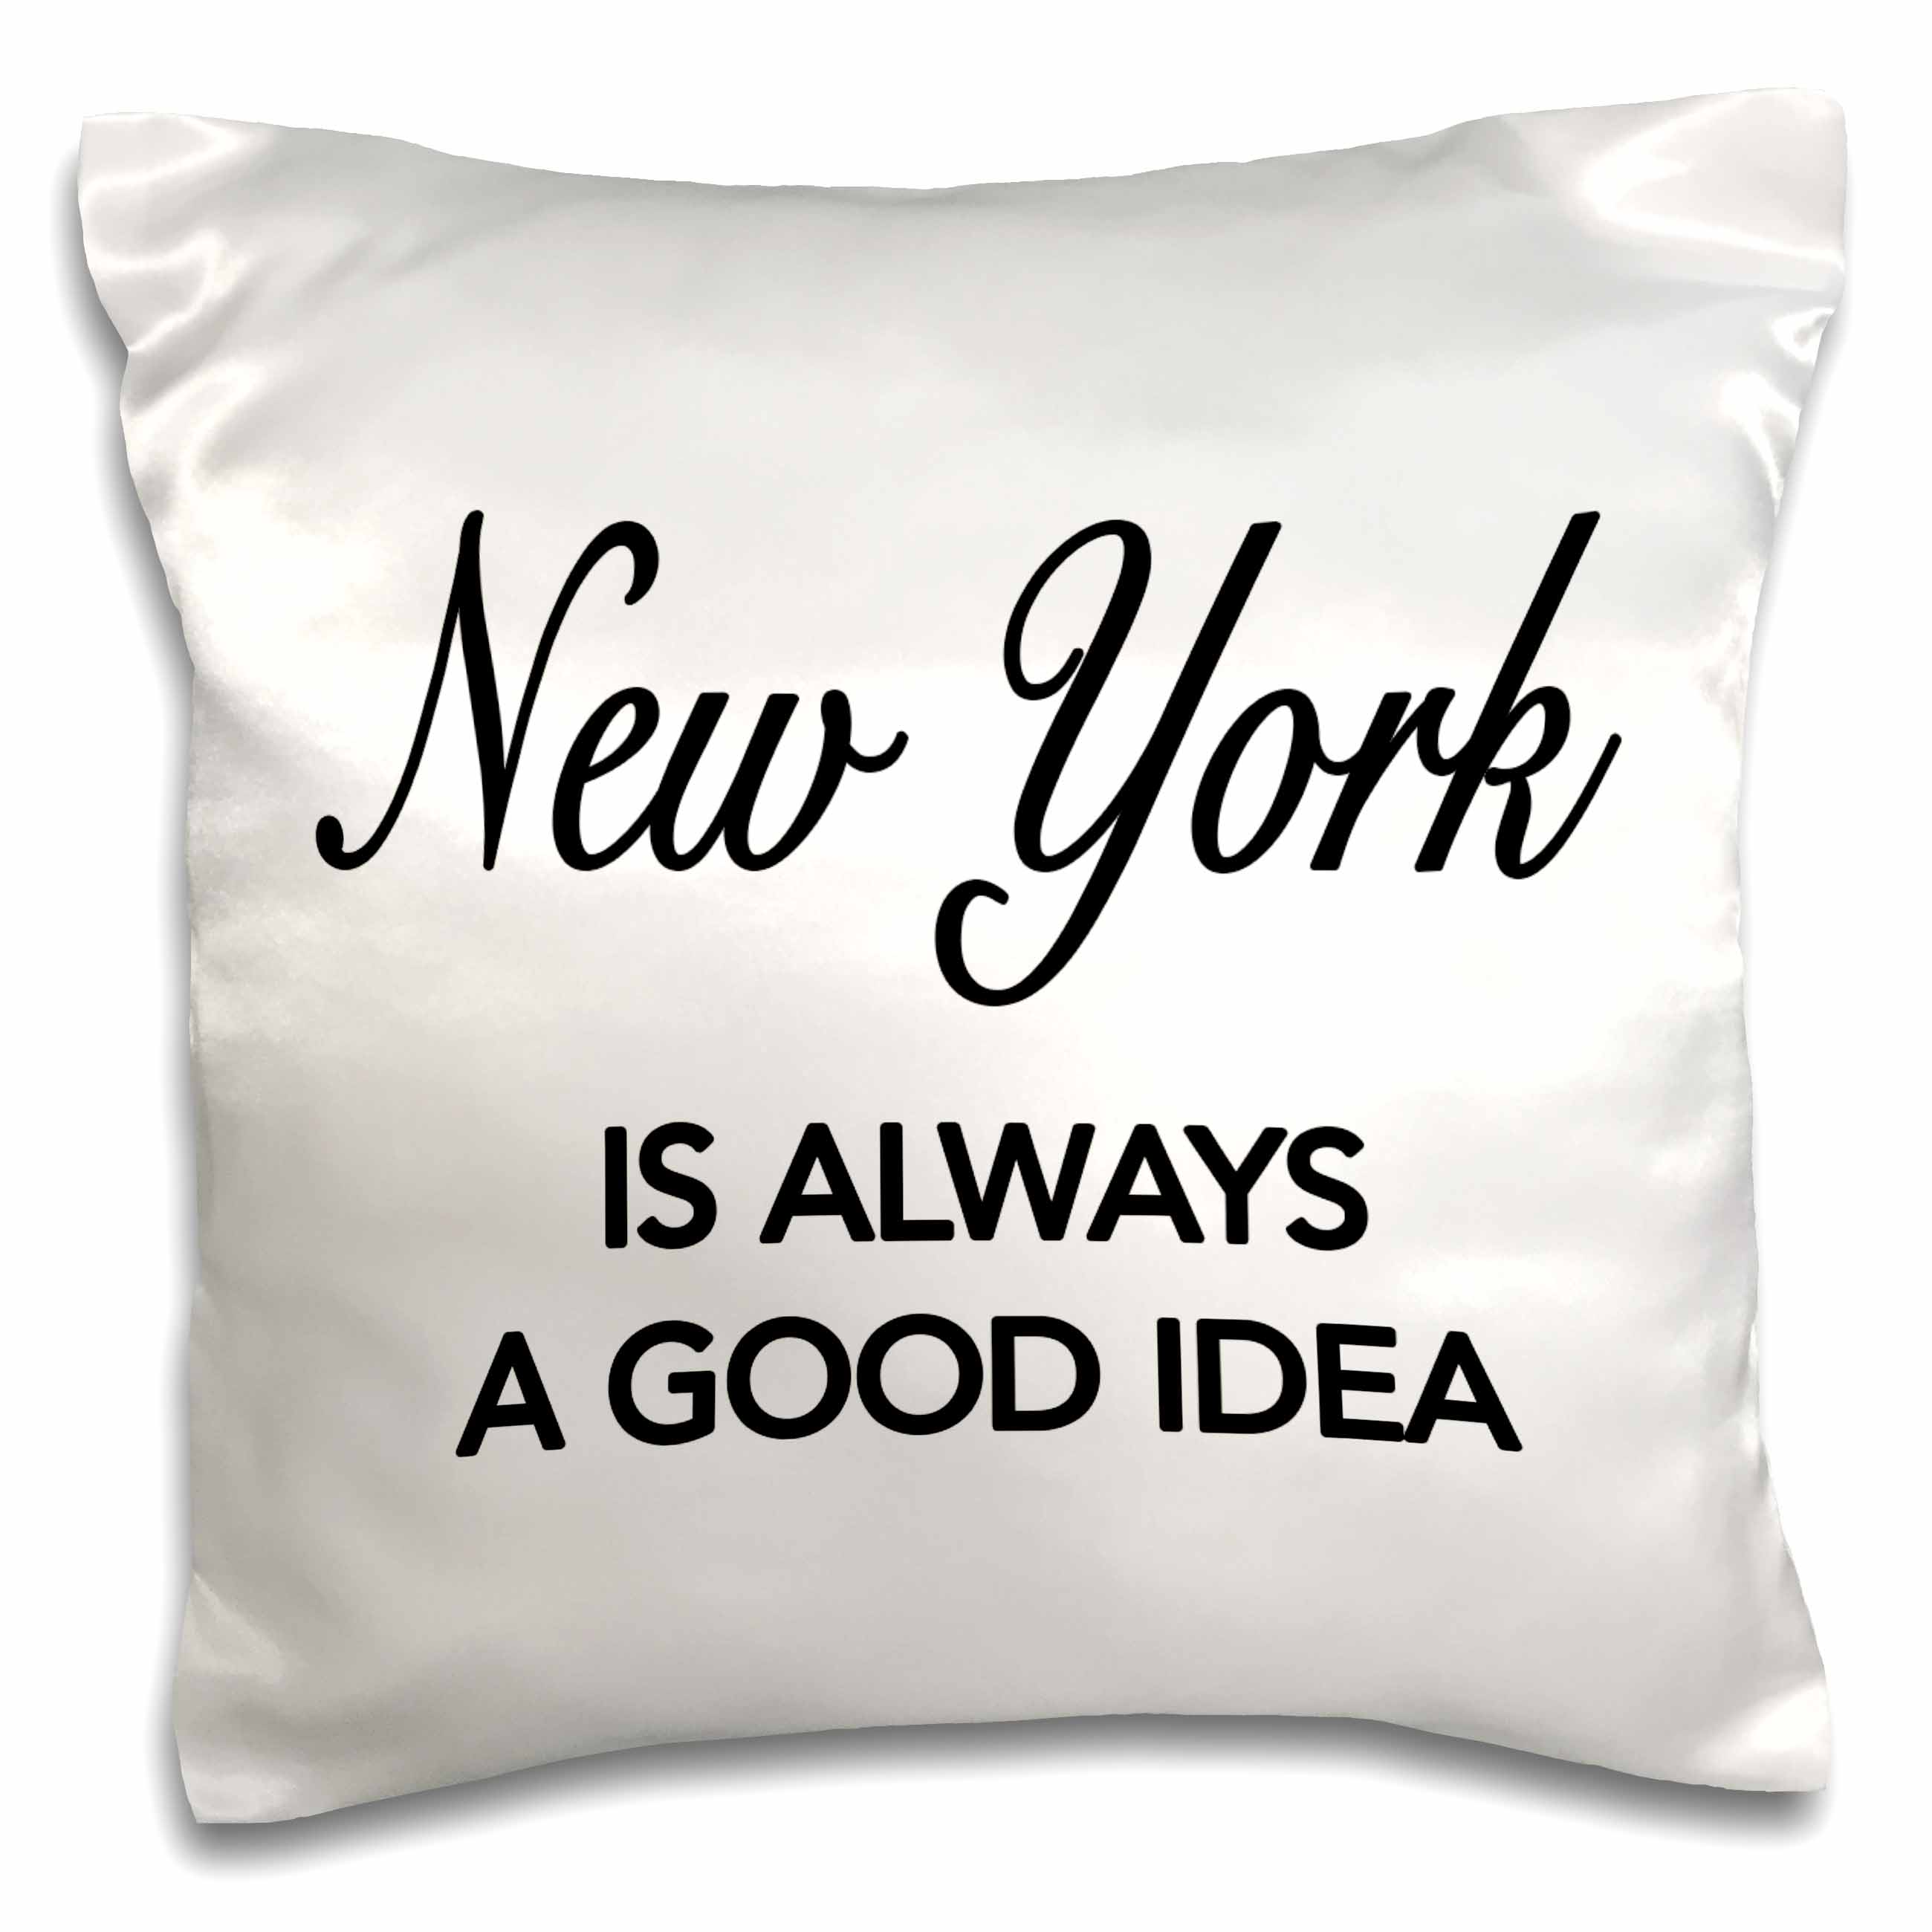 3dRose New York is always a good idea, Pillow Case, 16 by 16-inch